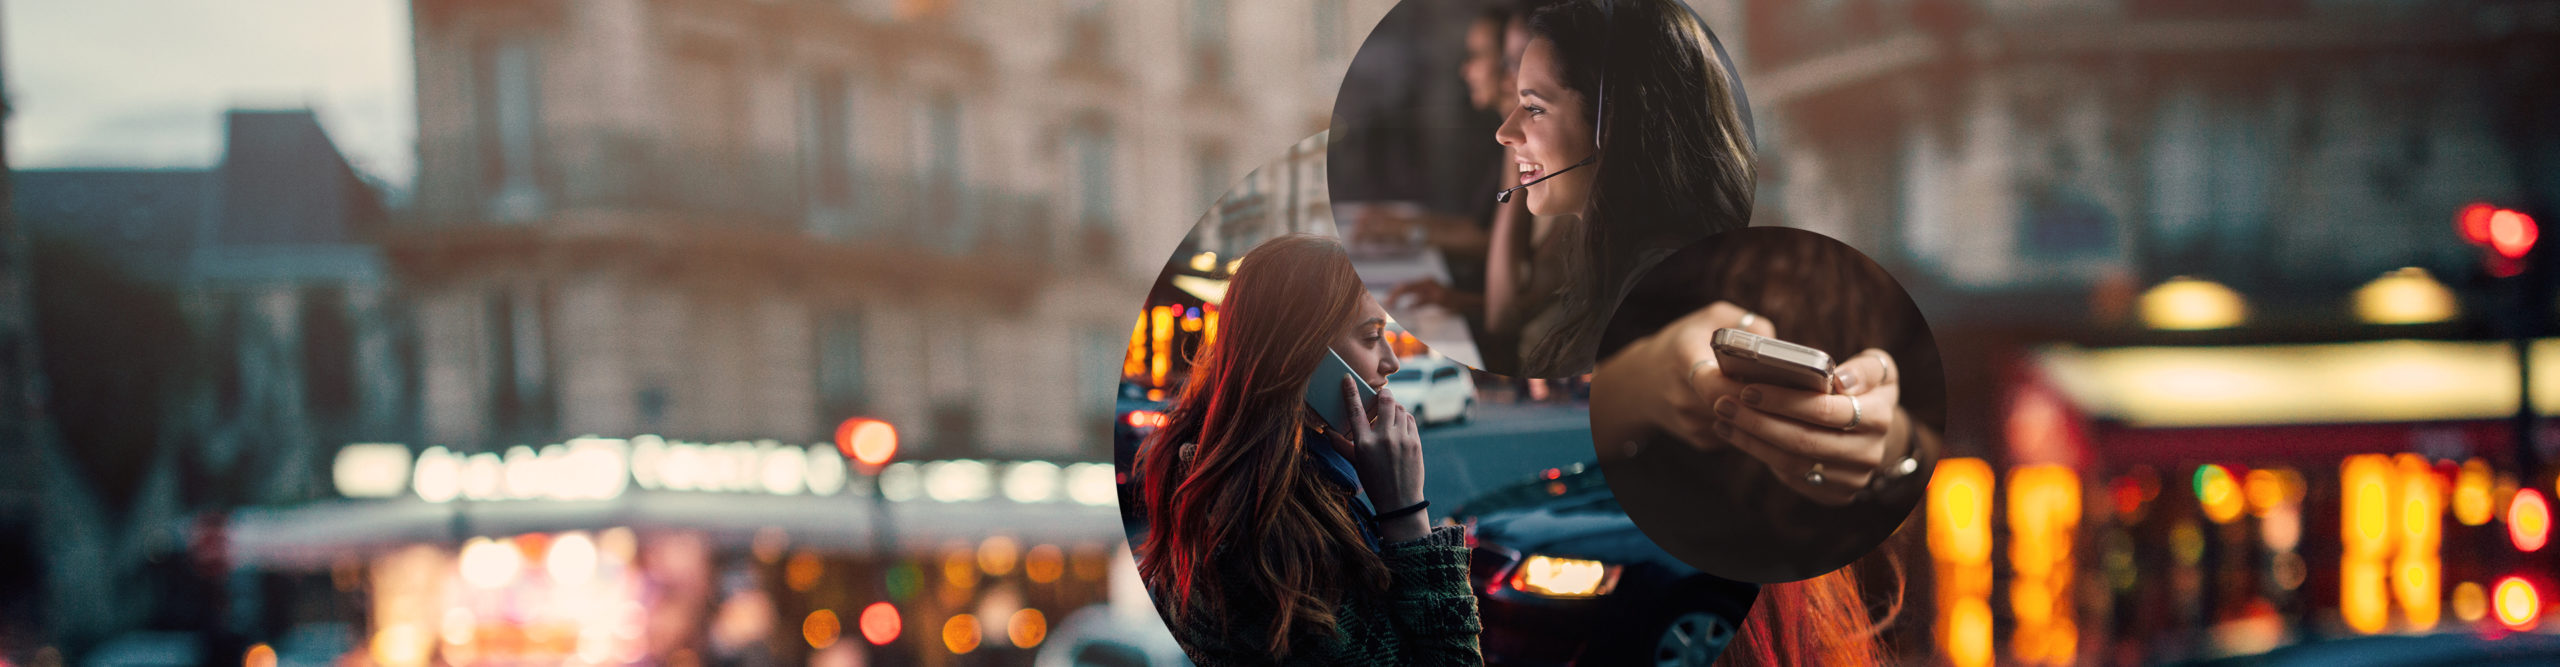 Picture of a woman with headset in front of a screen, next to it a picture of a woman holding a smartphone and behind it pictures of a woman in a city and a city view, valantic telecommunication and media